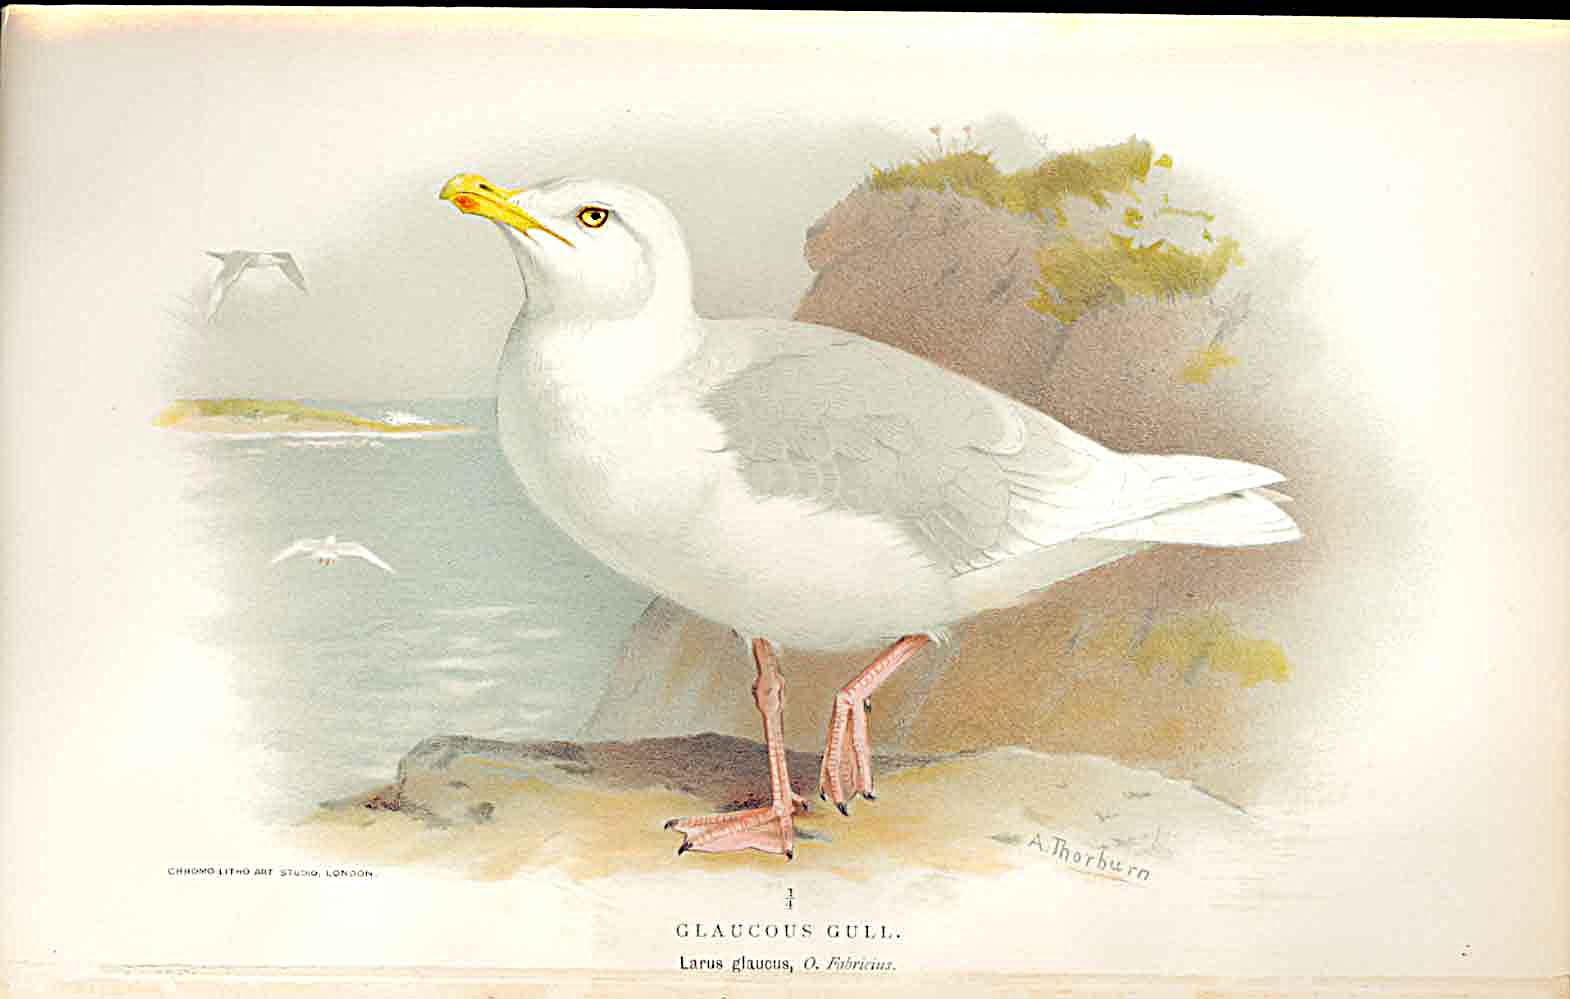 Print Glaucous Gull Lilfords Birds 1885-97 By A Thorburn 249011 Old Original